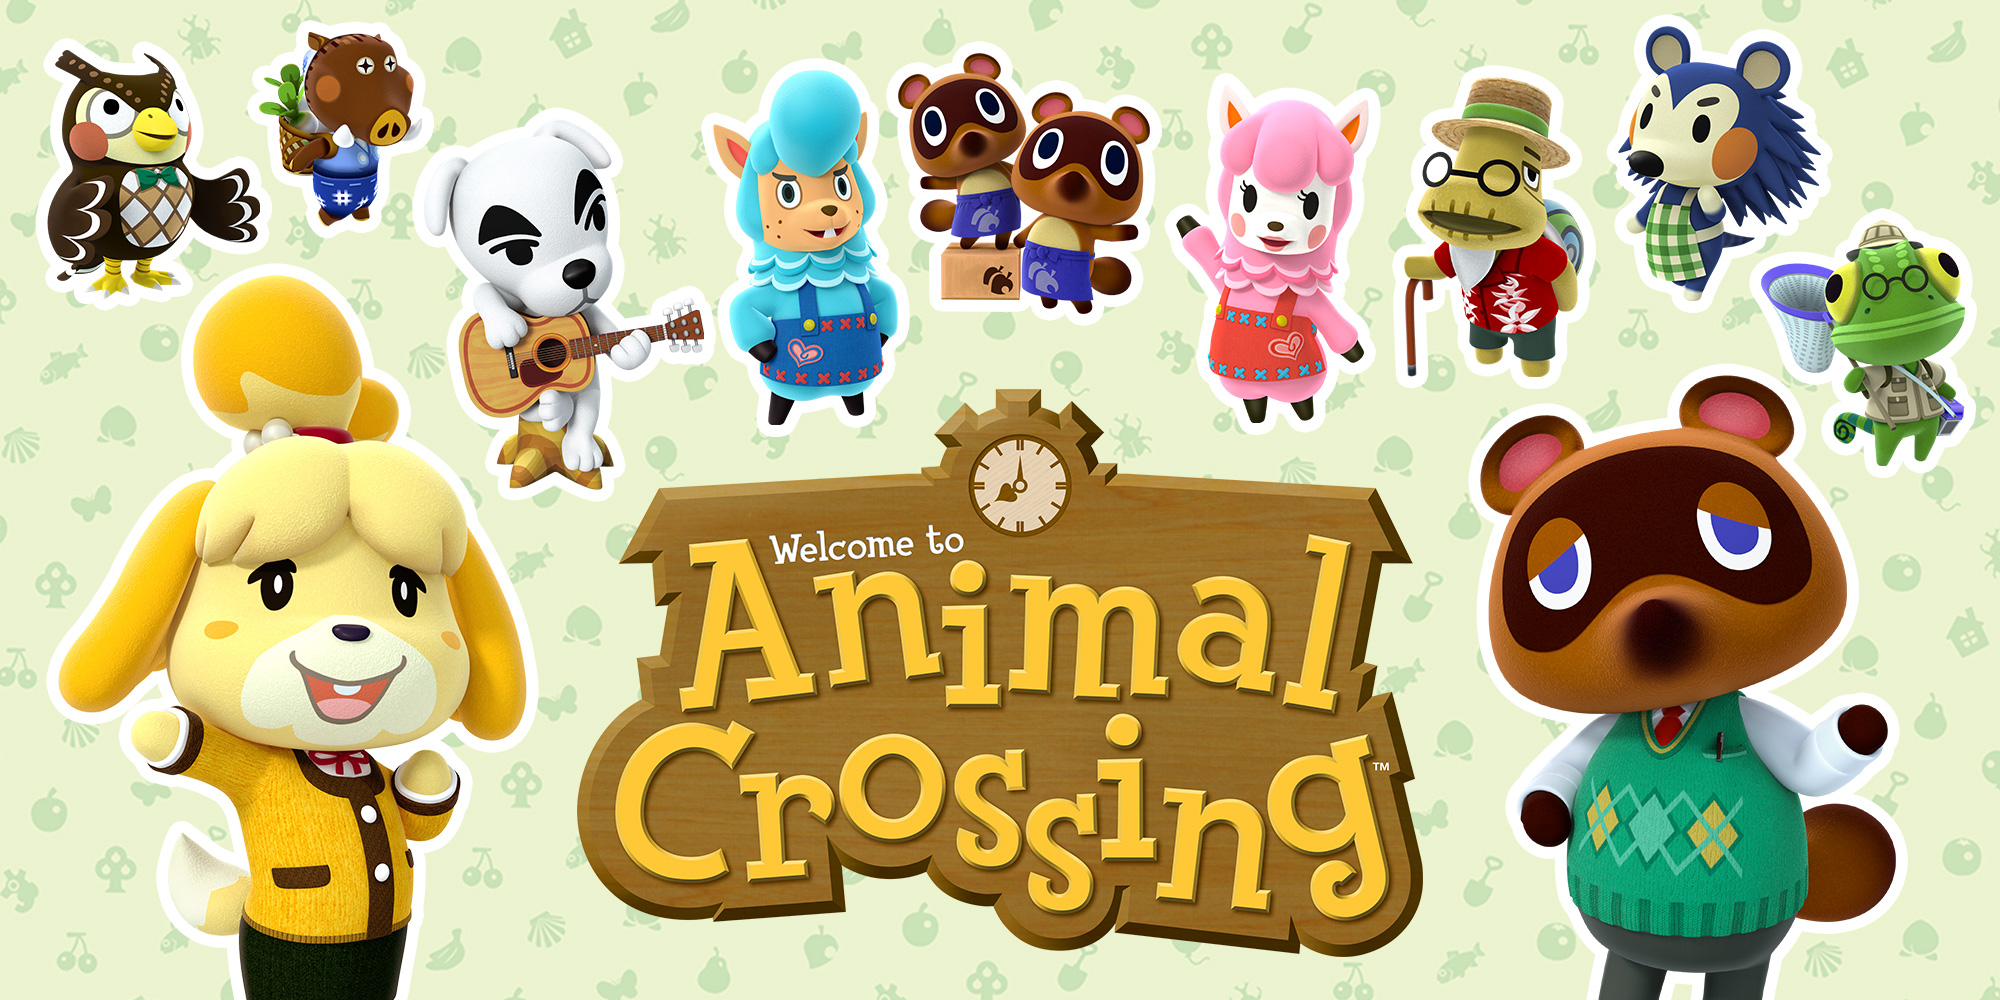 Portail animal crossing jeux nintendo - Animal crossing new leaf consoles ...